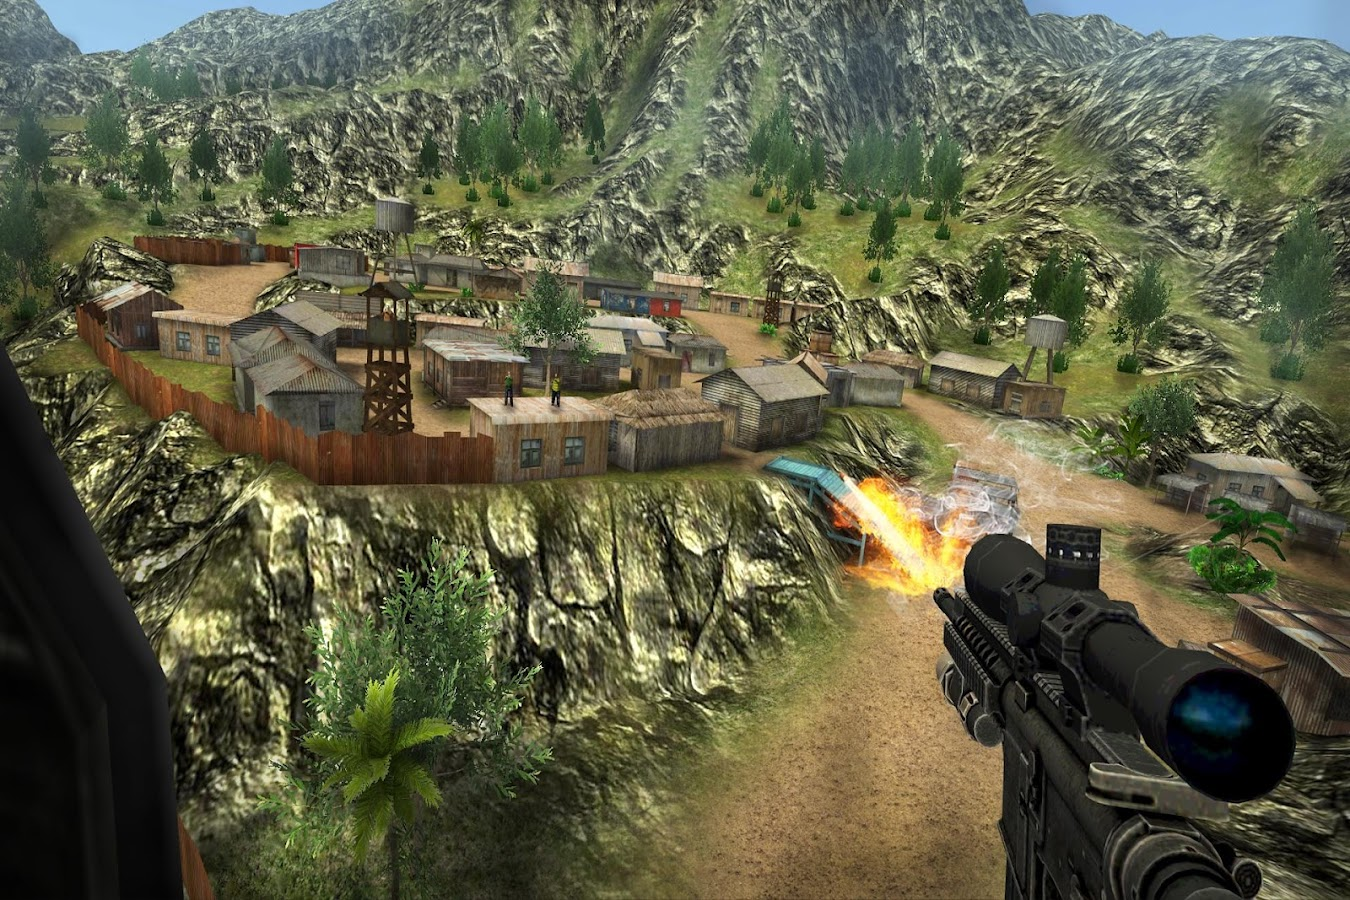 Sniper Ops - 3D Shooting Game Screenshot 18